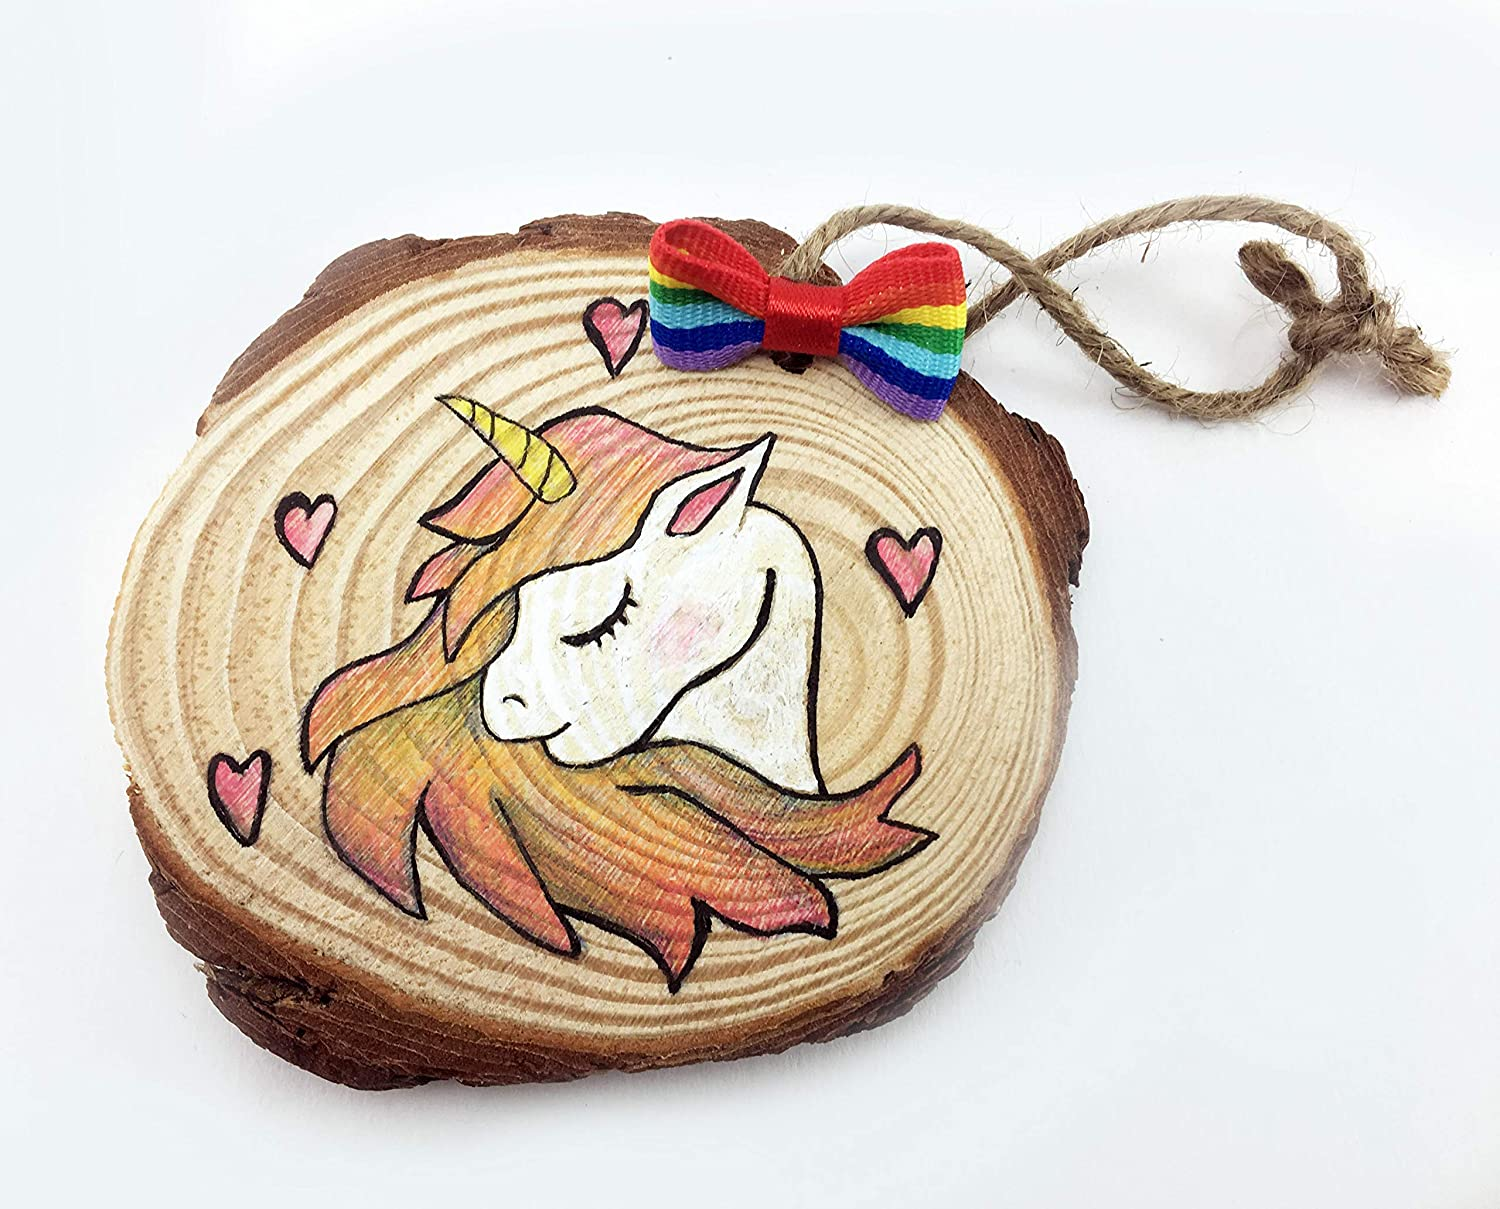 Unicorn 2018 Handmade Wood Slice Ornament for Tree